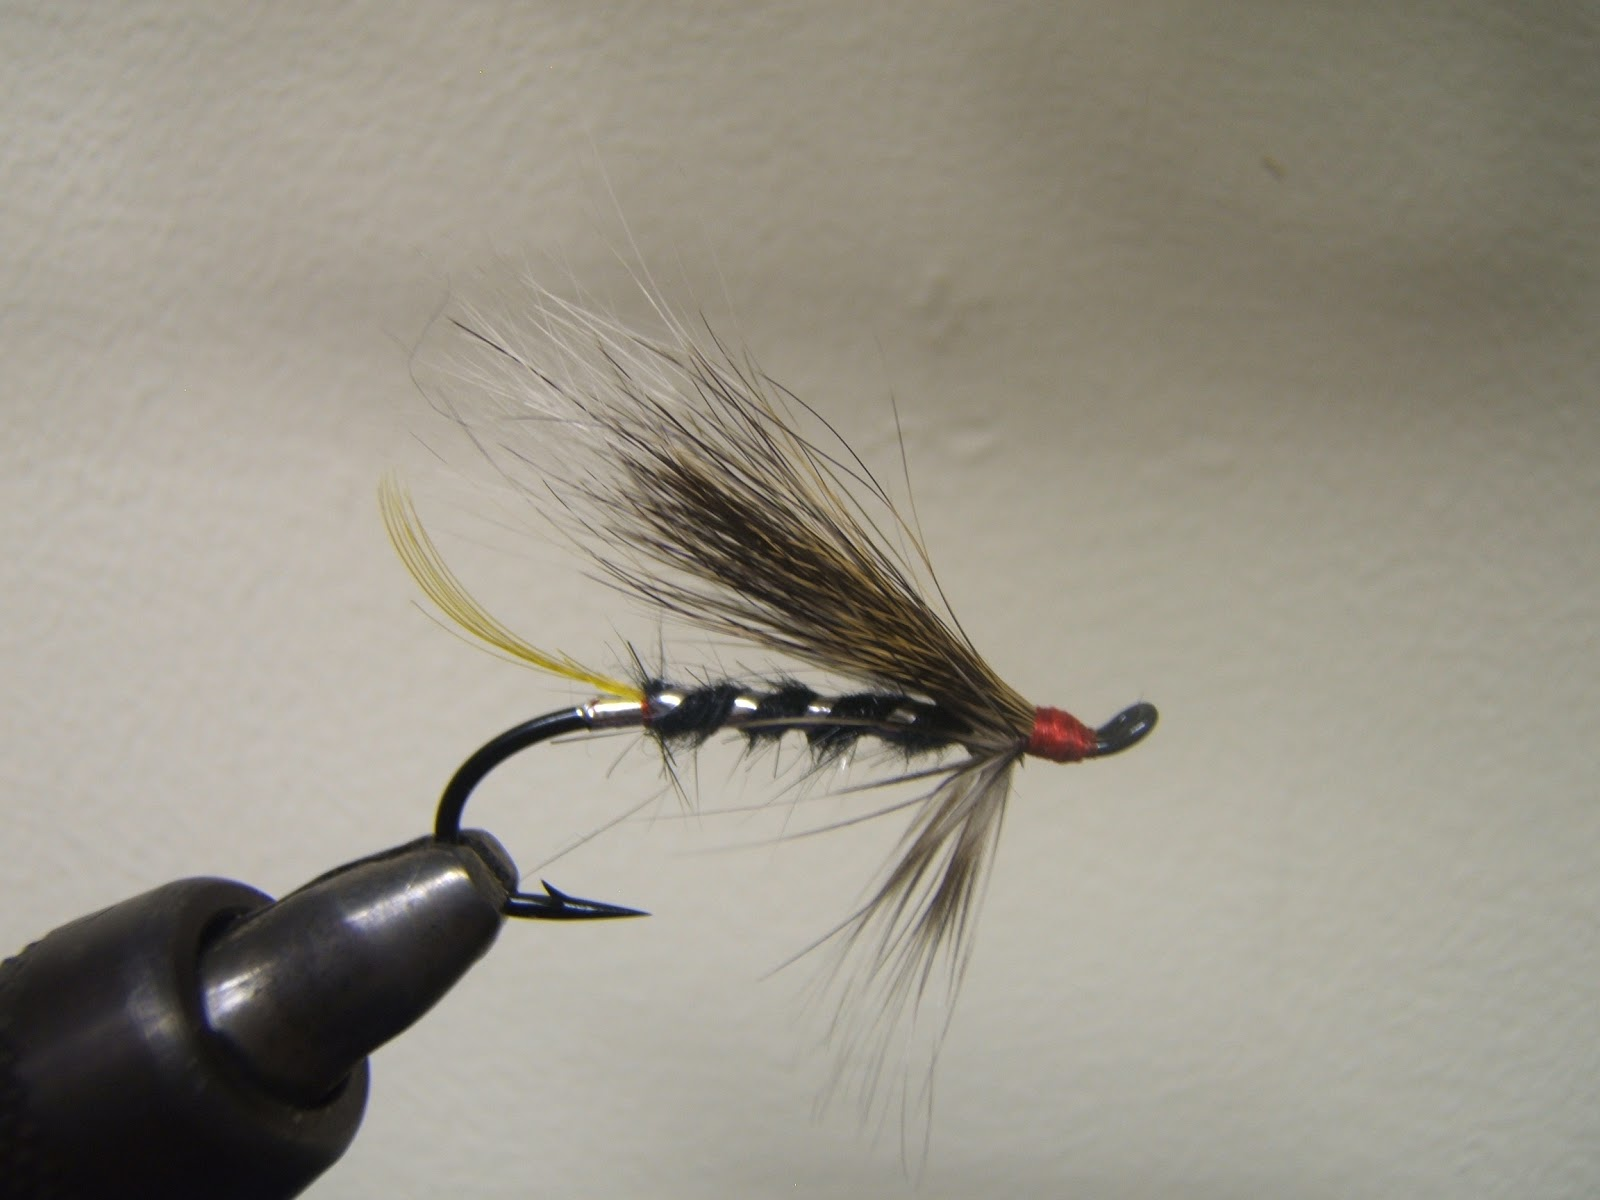 Rvrwader fly tying and fly fishing shadow boxing a black rat for Shadow fly fishing